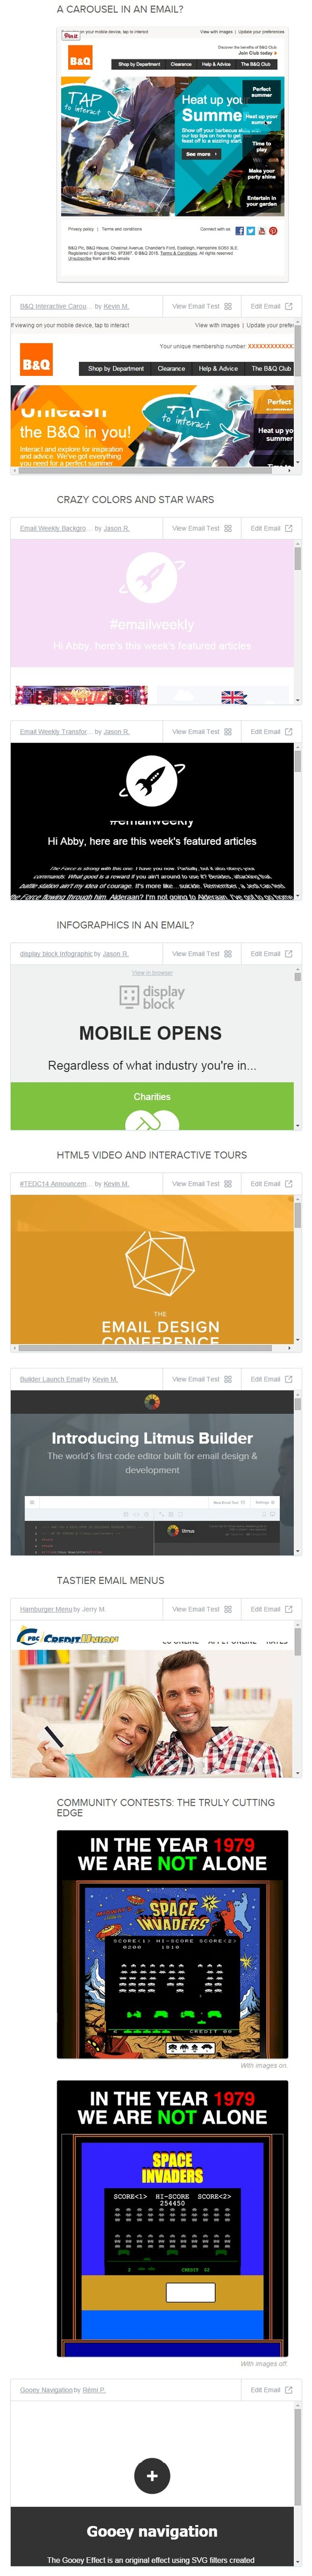 Is this the future of email design? | Litmus | The Marketing Technology Alert | Scoop.it